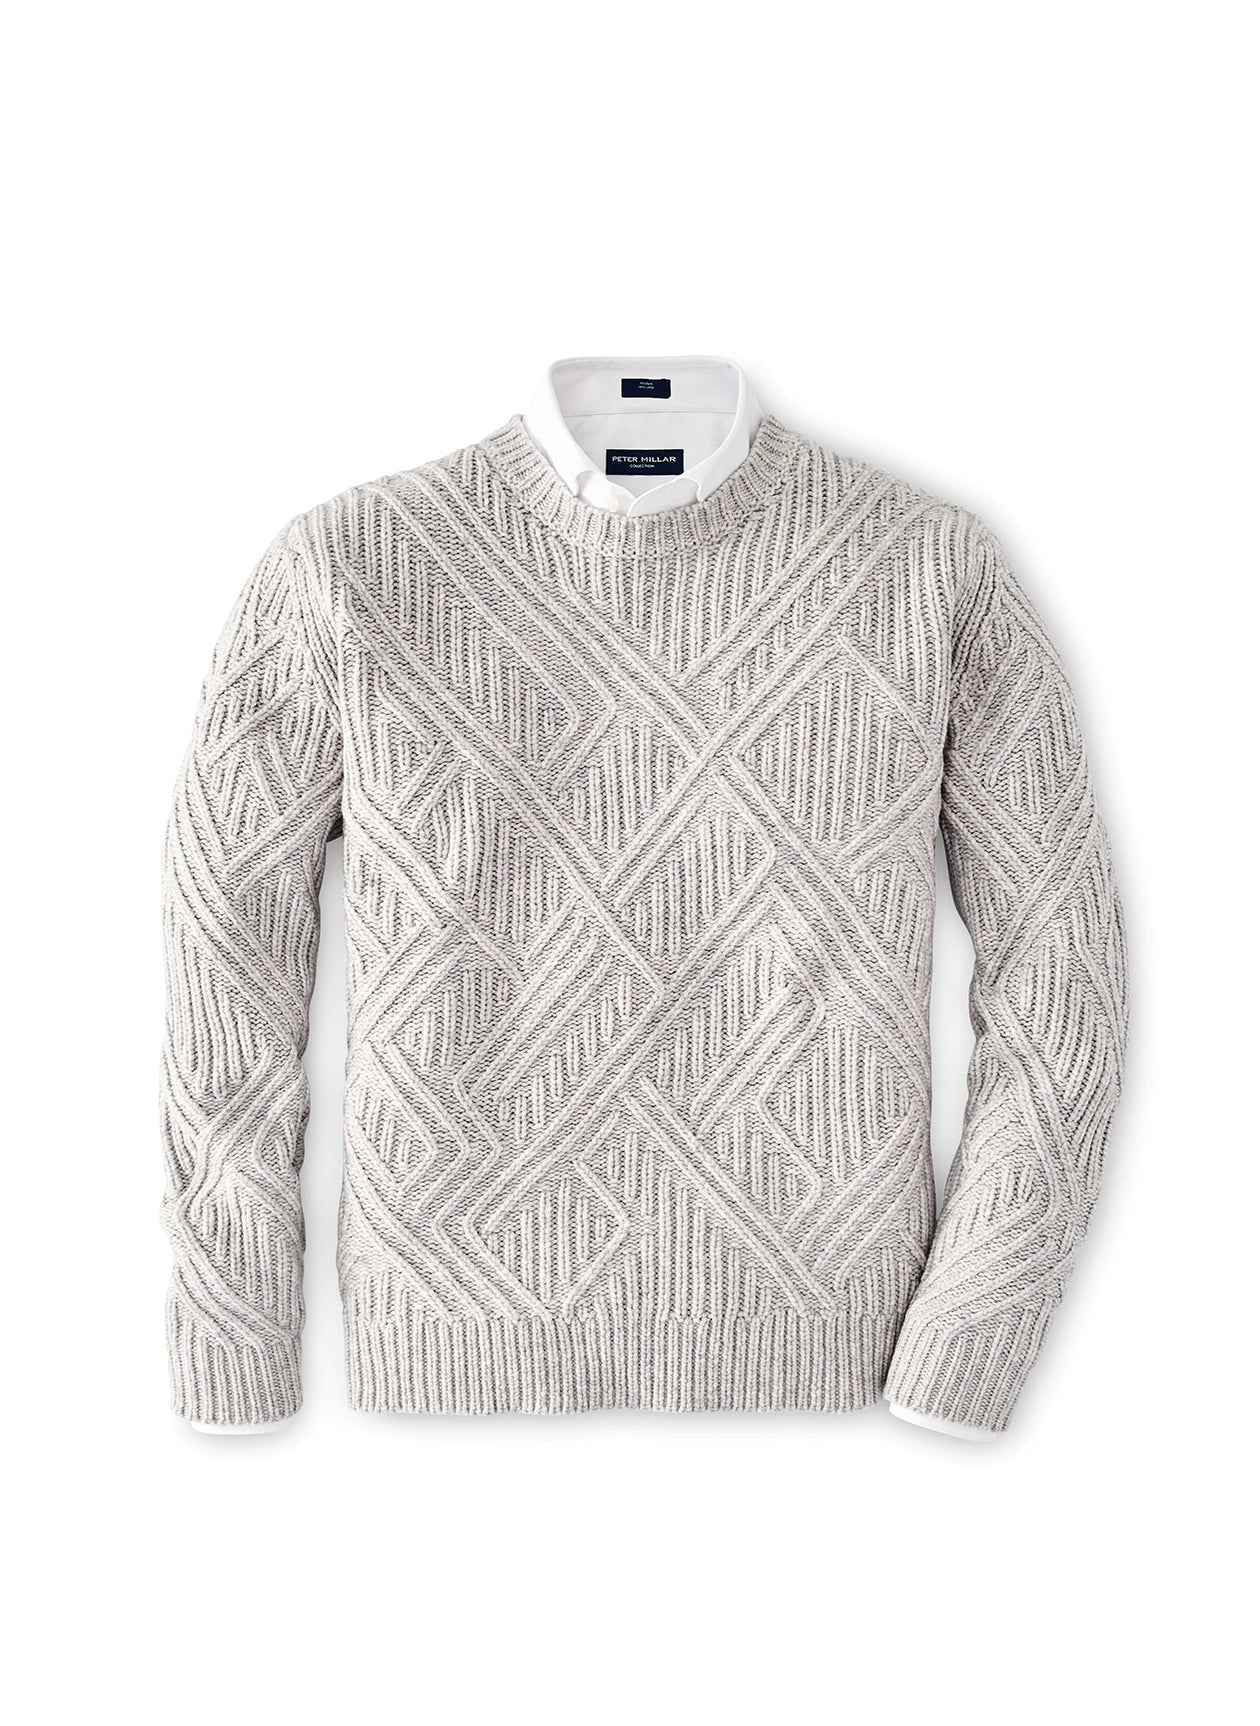 CHALET CHAIN LINK CREW NECK SWEATER - ARGENTO